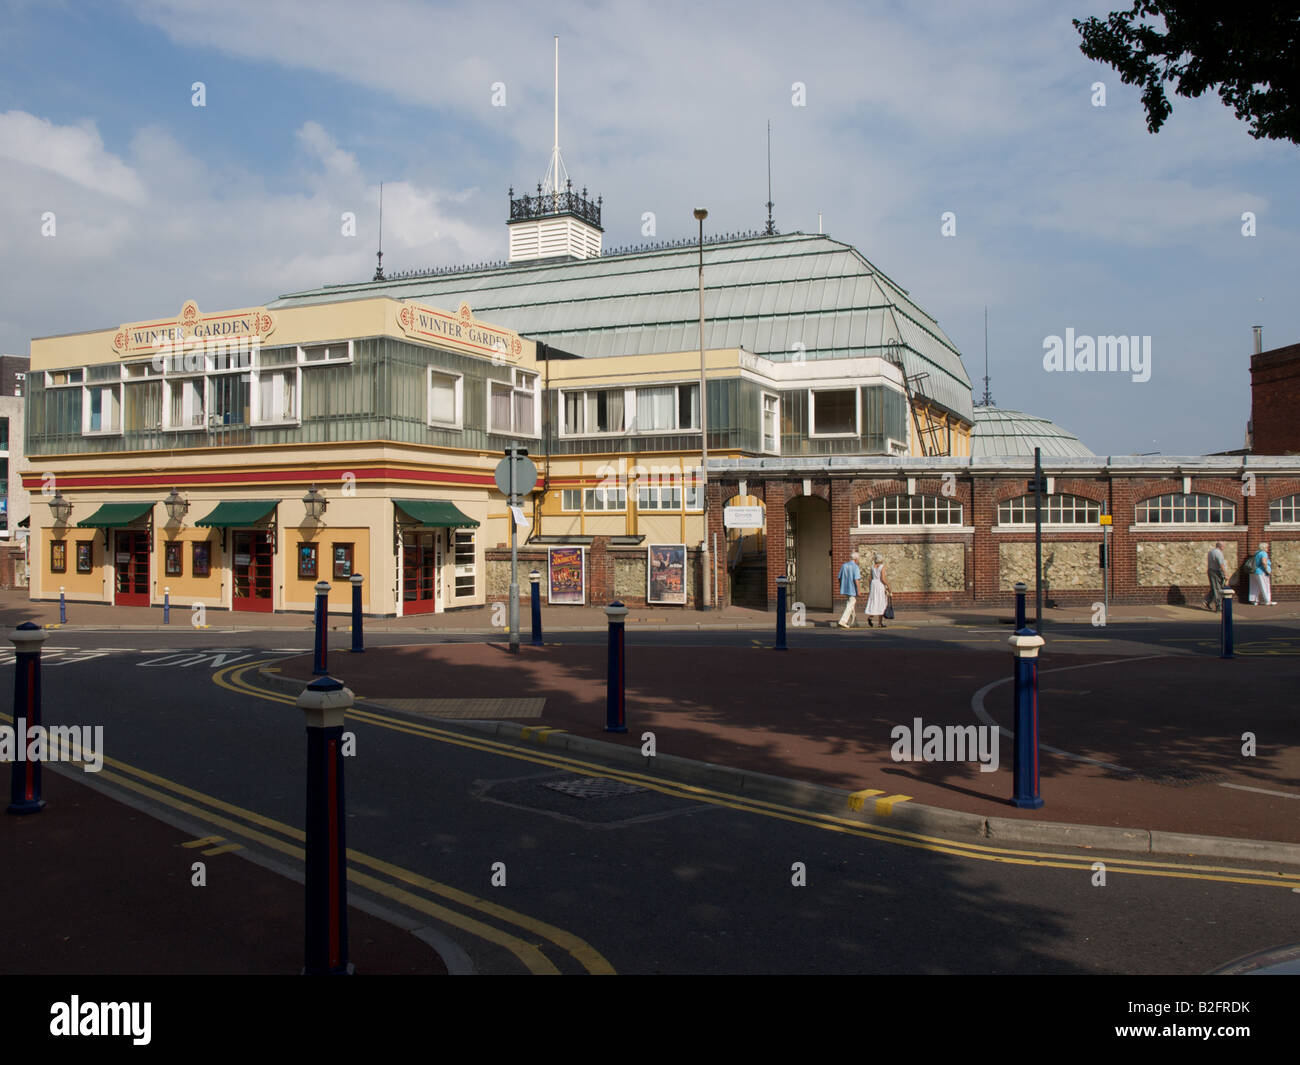 Entrance to the Winter Garden Complex at Eastbourne Stock Photo ...